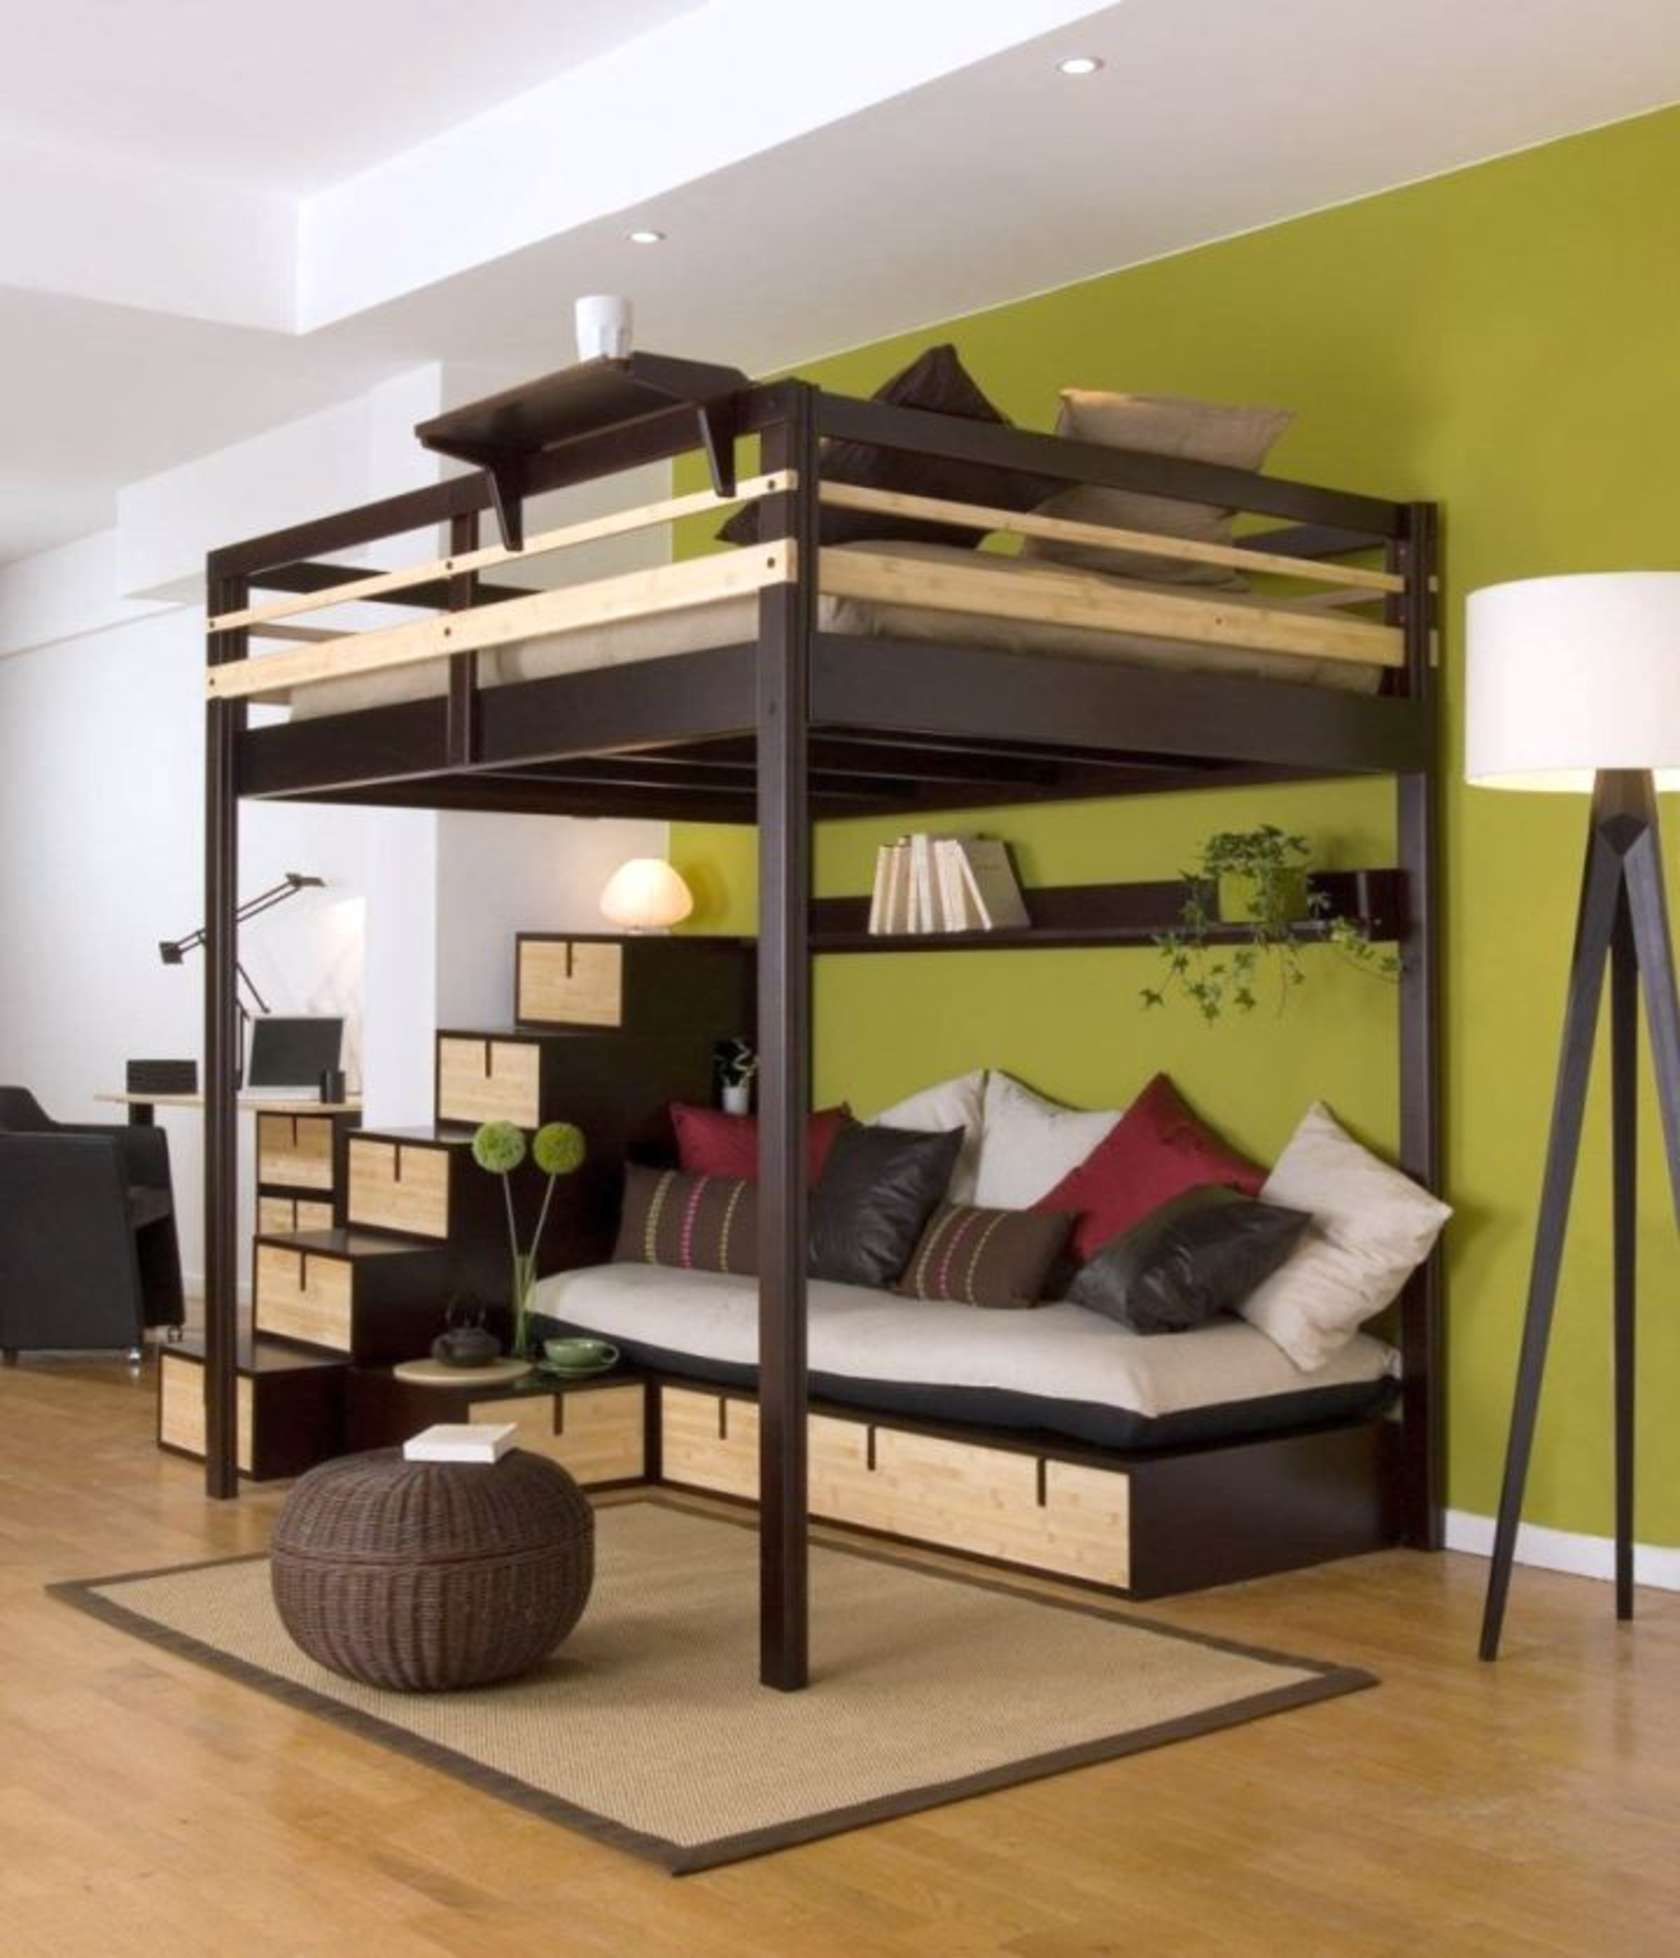 Super Cool Beds super cool loft beds for grownups | d.c. neighborhoods | pinterest